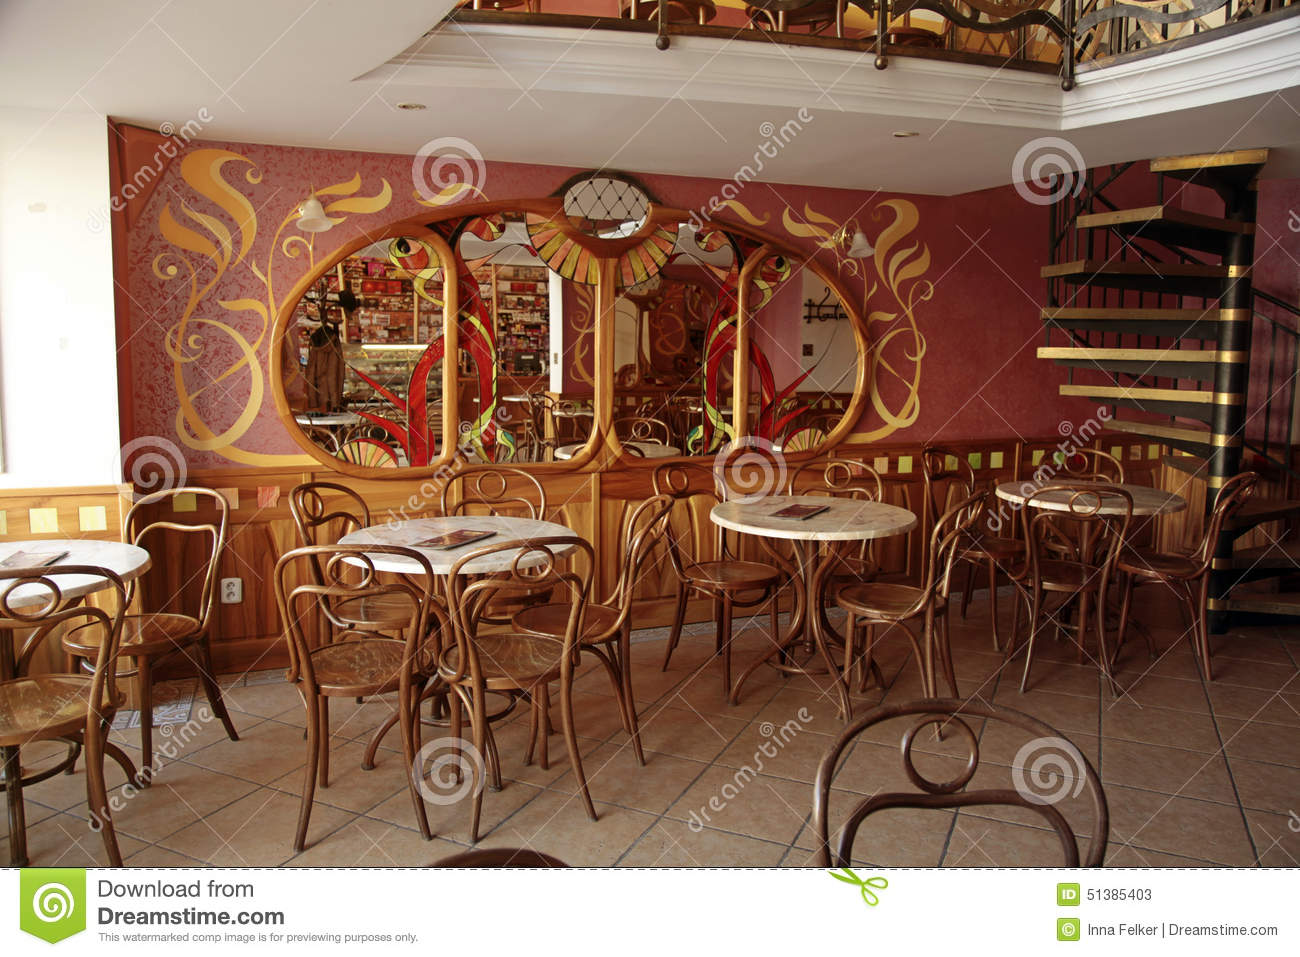 old cafe interior in typical viennese style bratislava editorial stock photo image 51385403. Black Bedroom Furniture Sets. Home Design Ideas